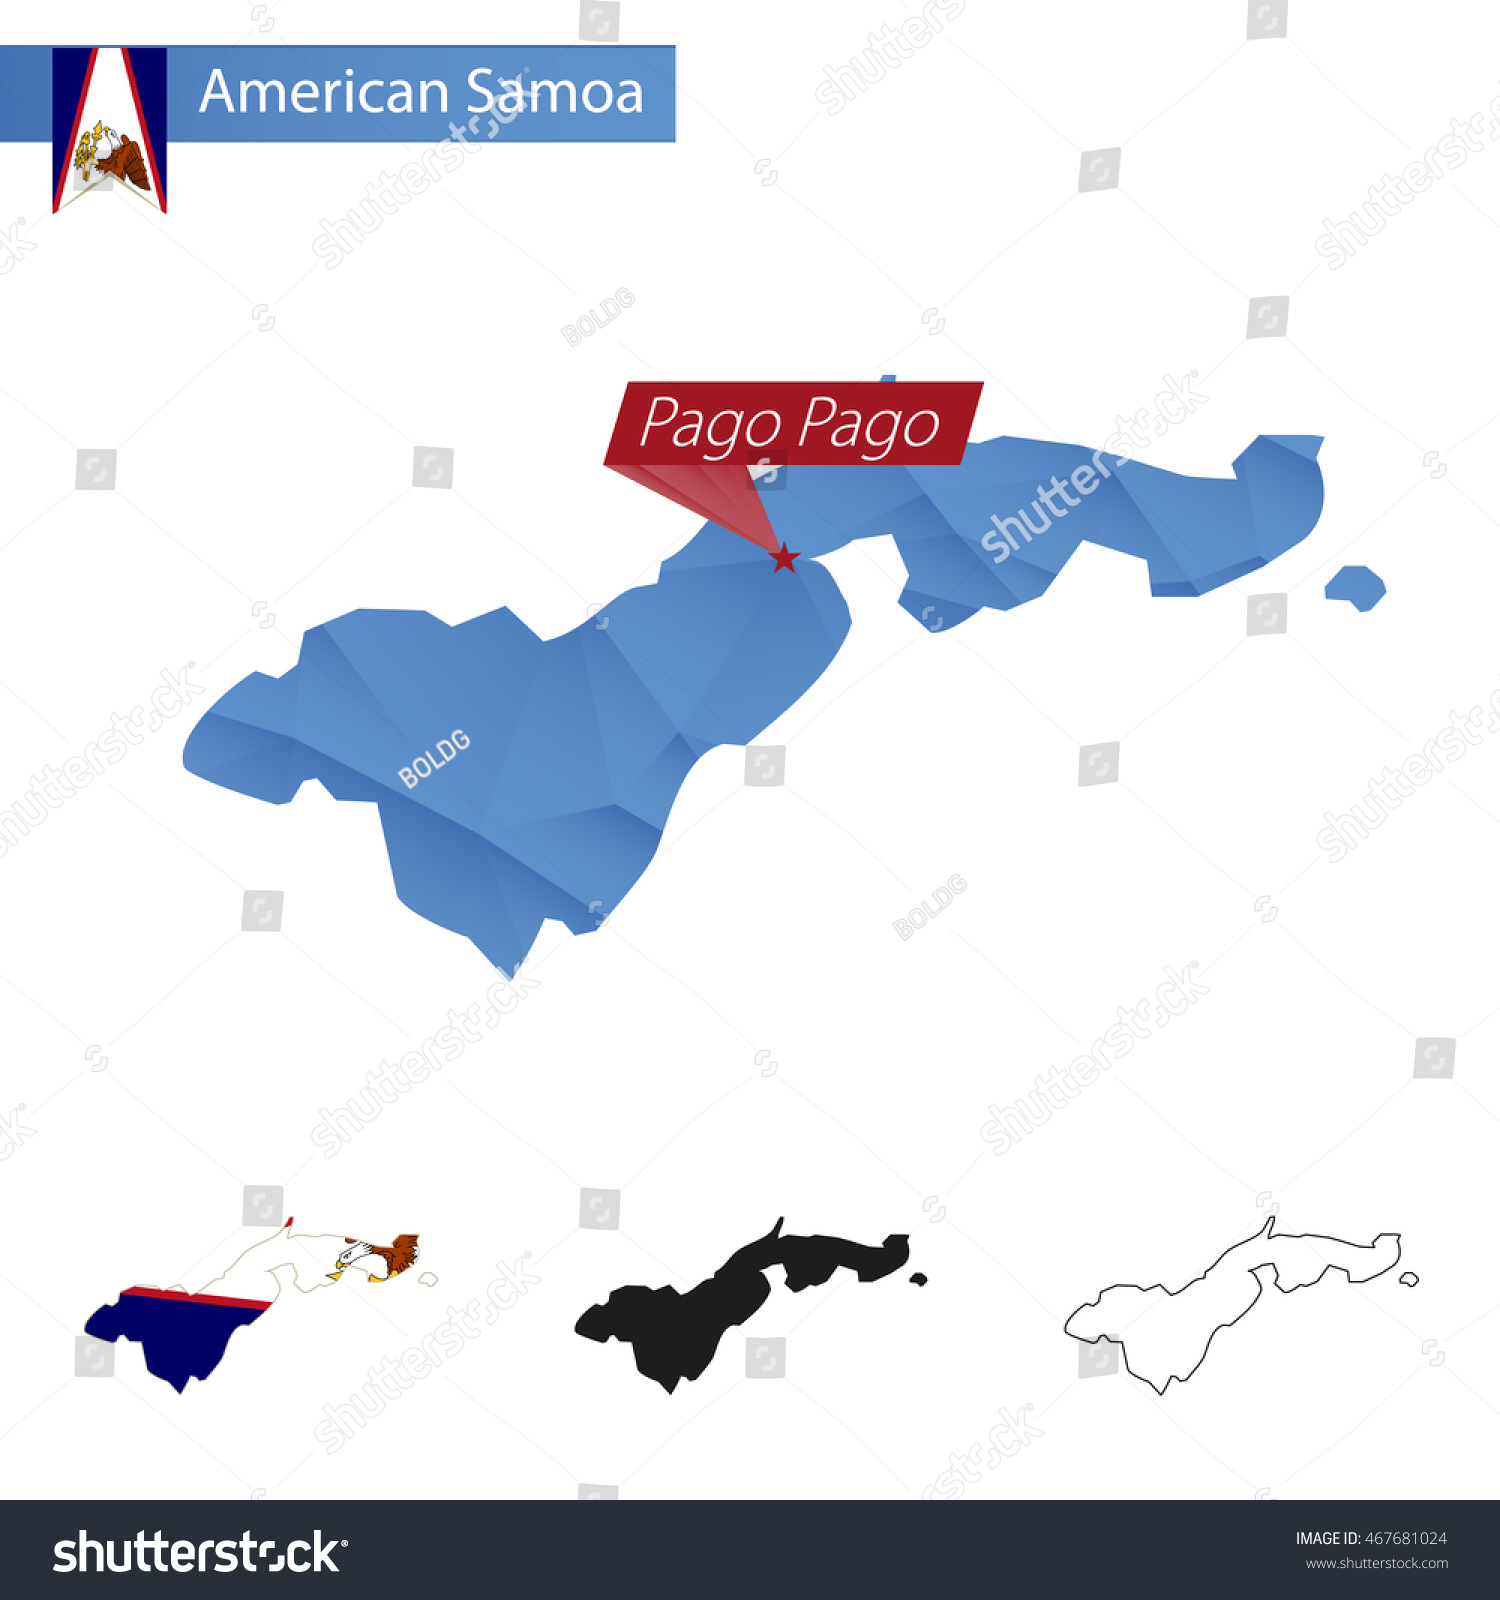 American Samoa Blue Low Poly Map Stock Vector Shutterstock - Samoa map vector